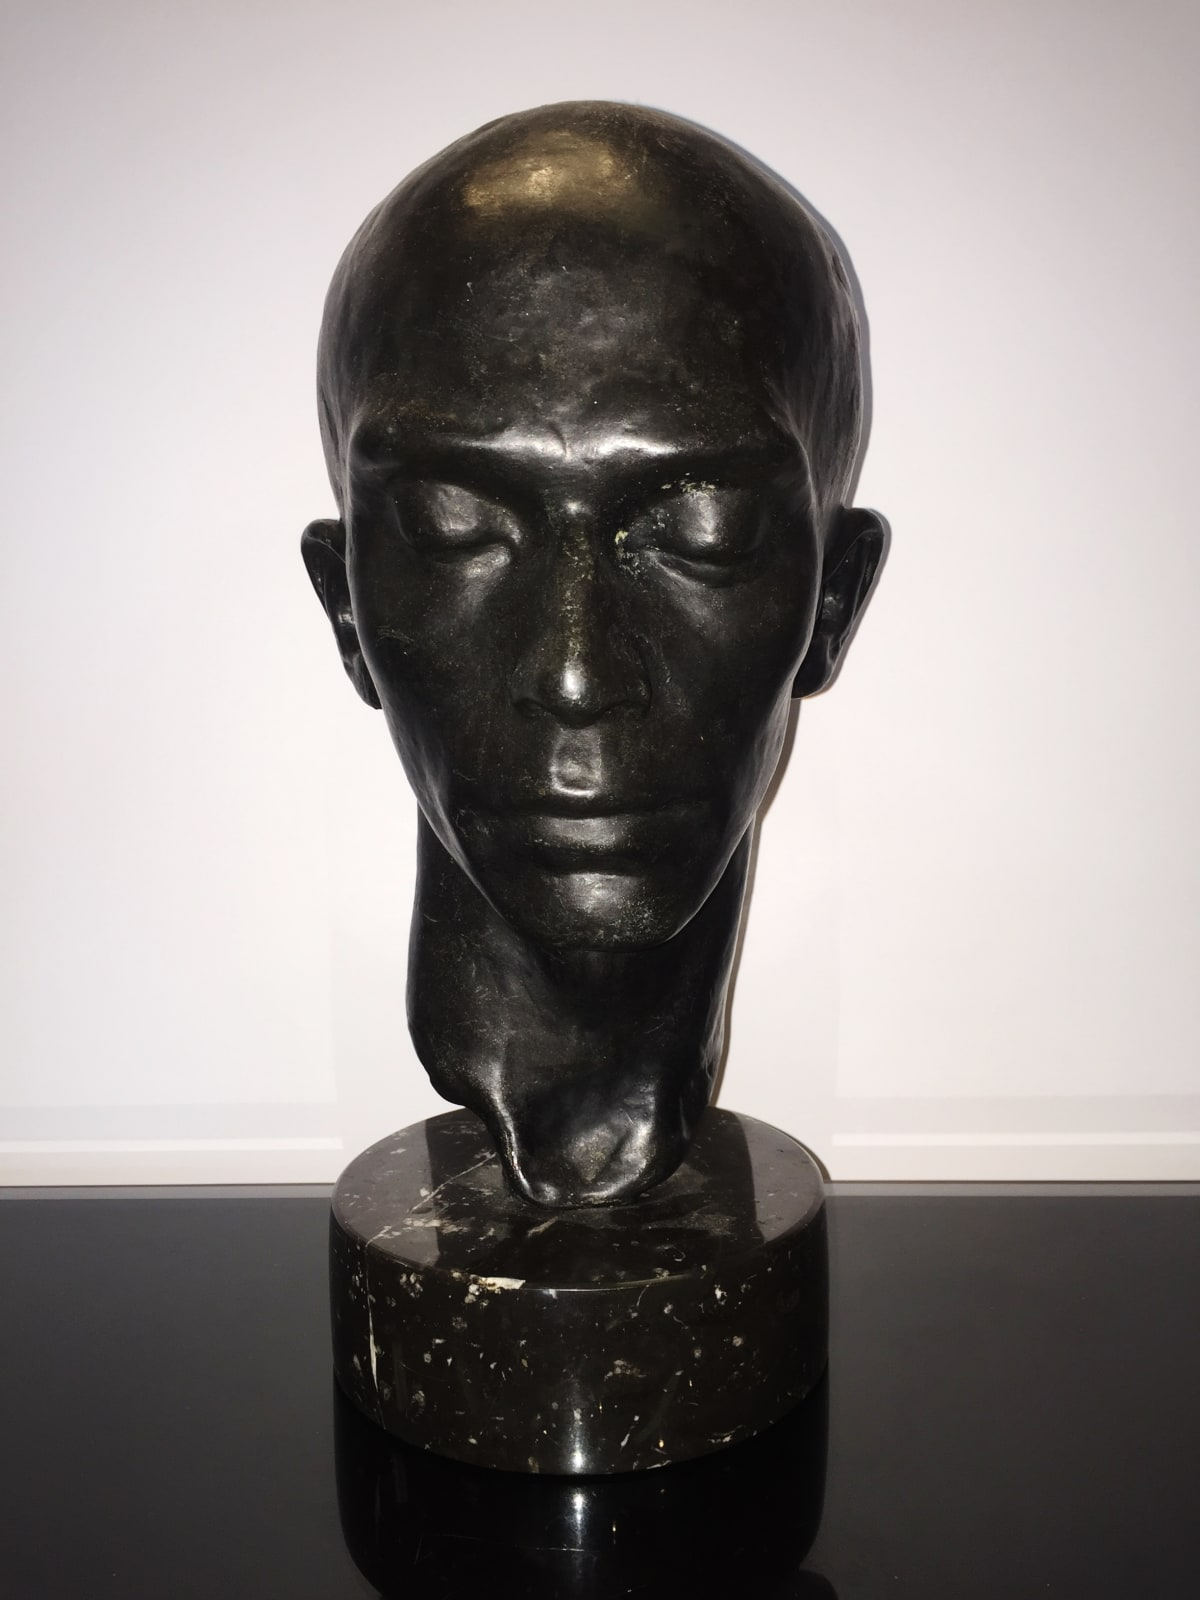 Richmond Barthe Head of a Dancer:Harald Kreutzberg, c. 1933 Bronze 13 x 8 x 6